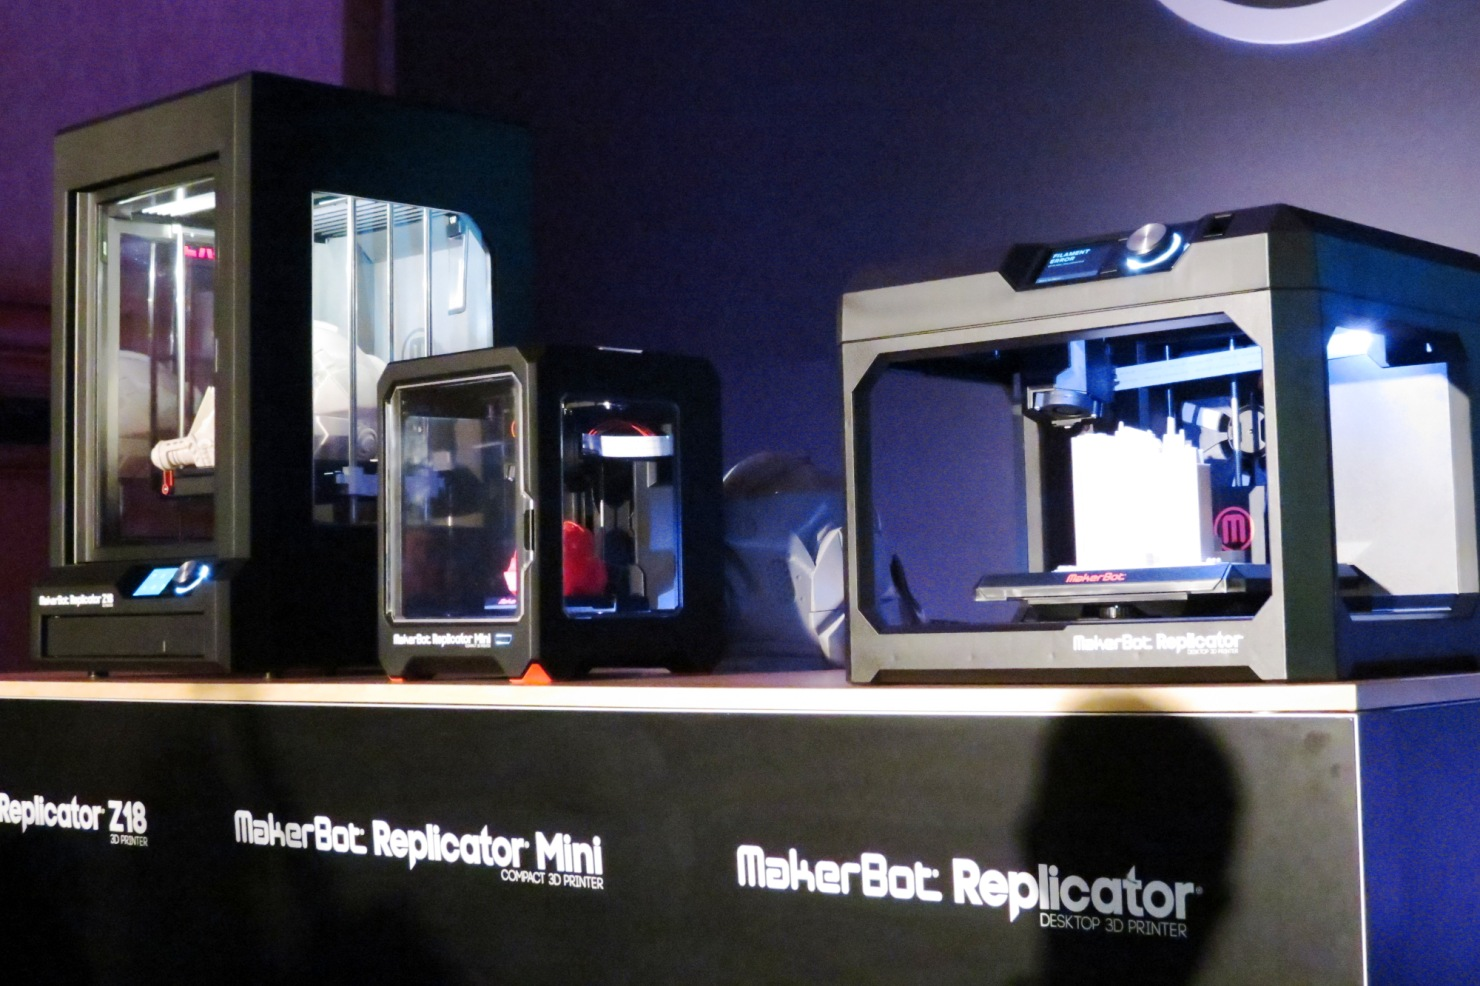 MakerBot brought three new printers to CES 2014 (photo by João-Pierre S. Ruth.)